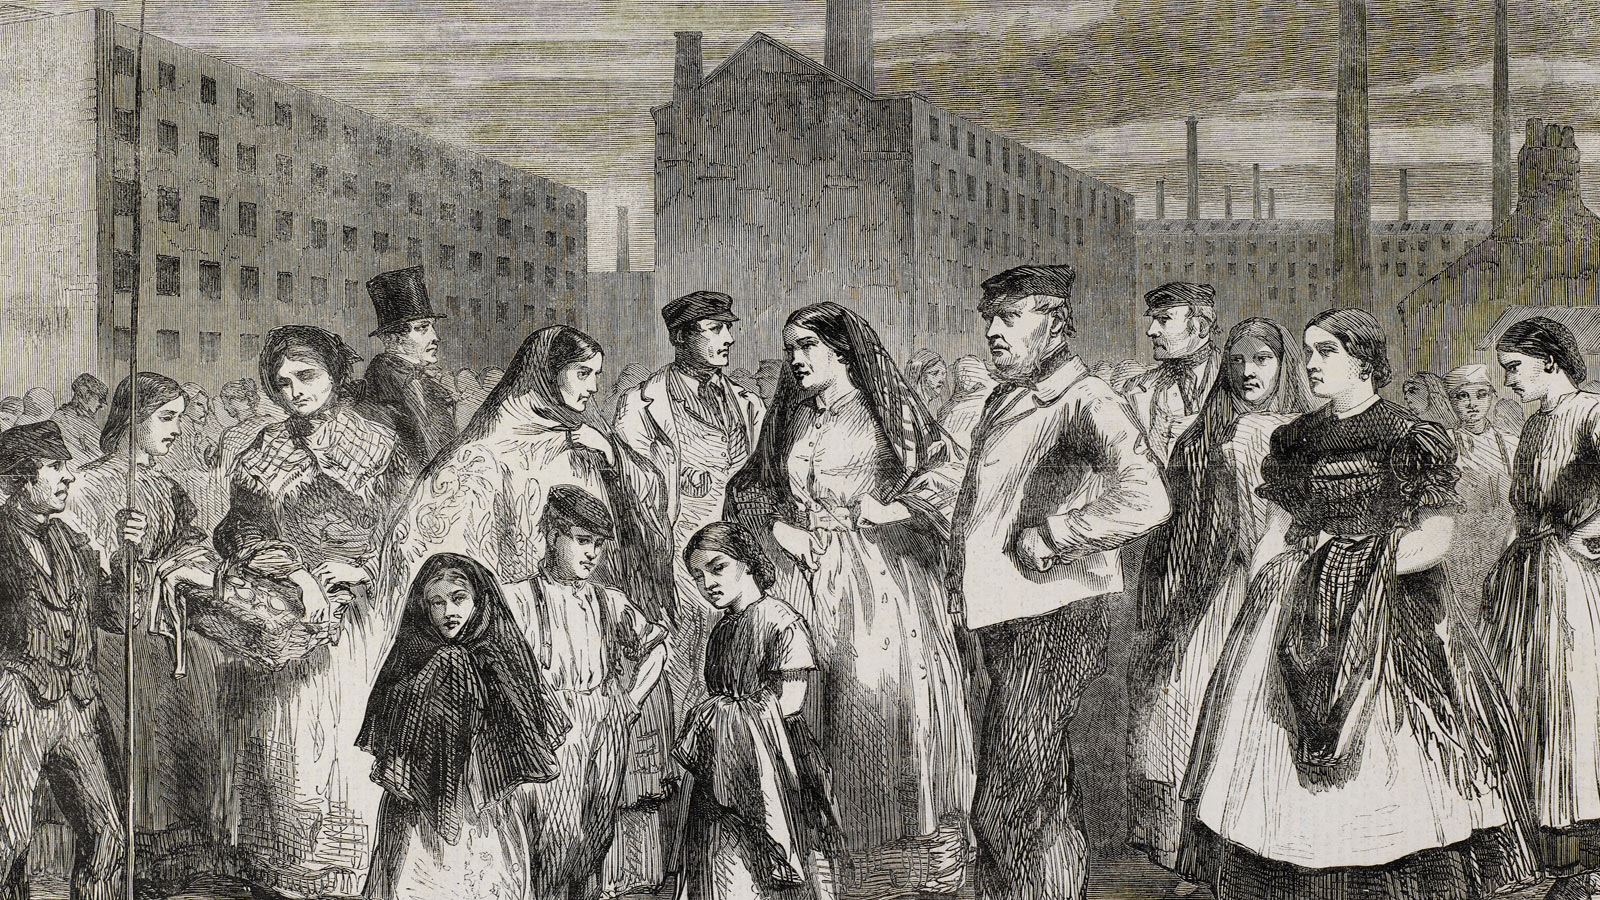 Manchester in the 19th century